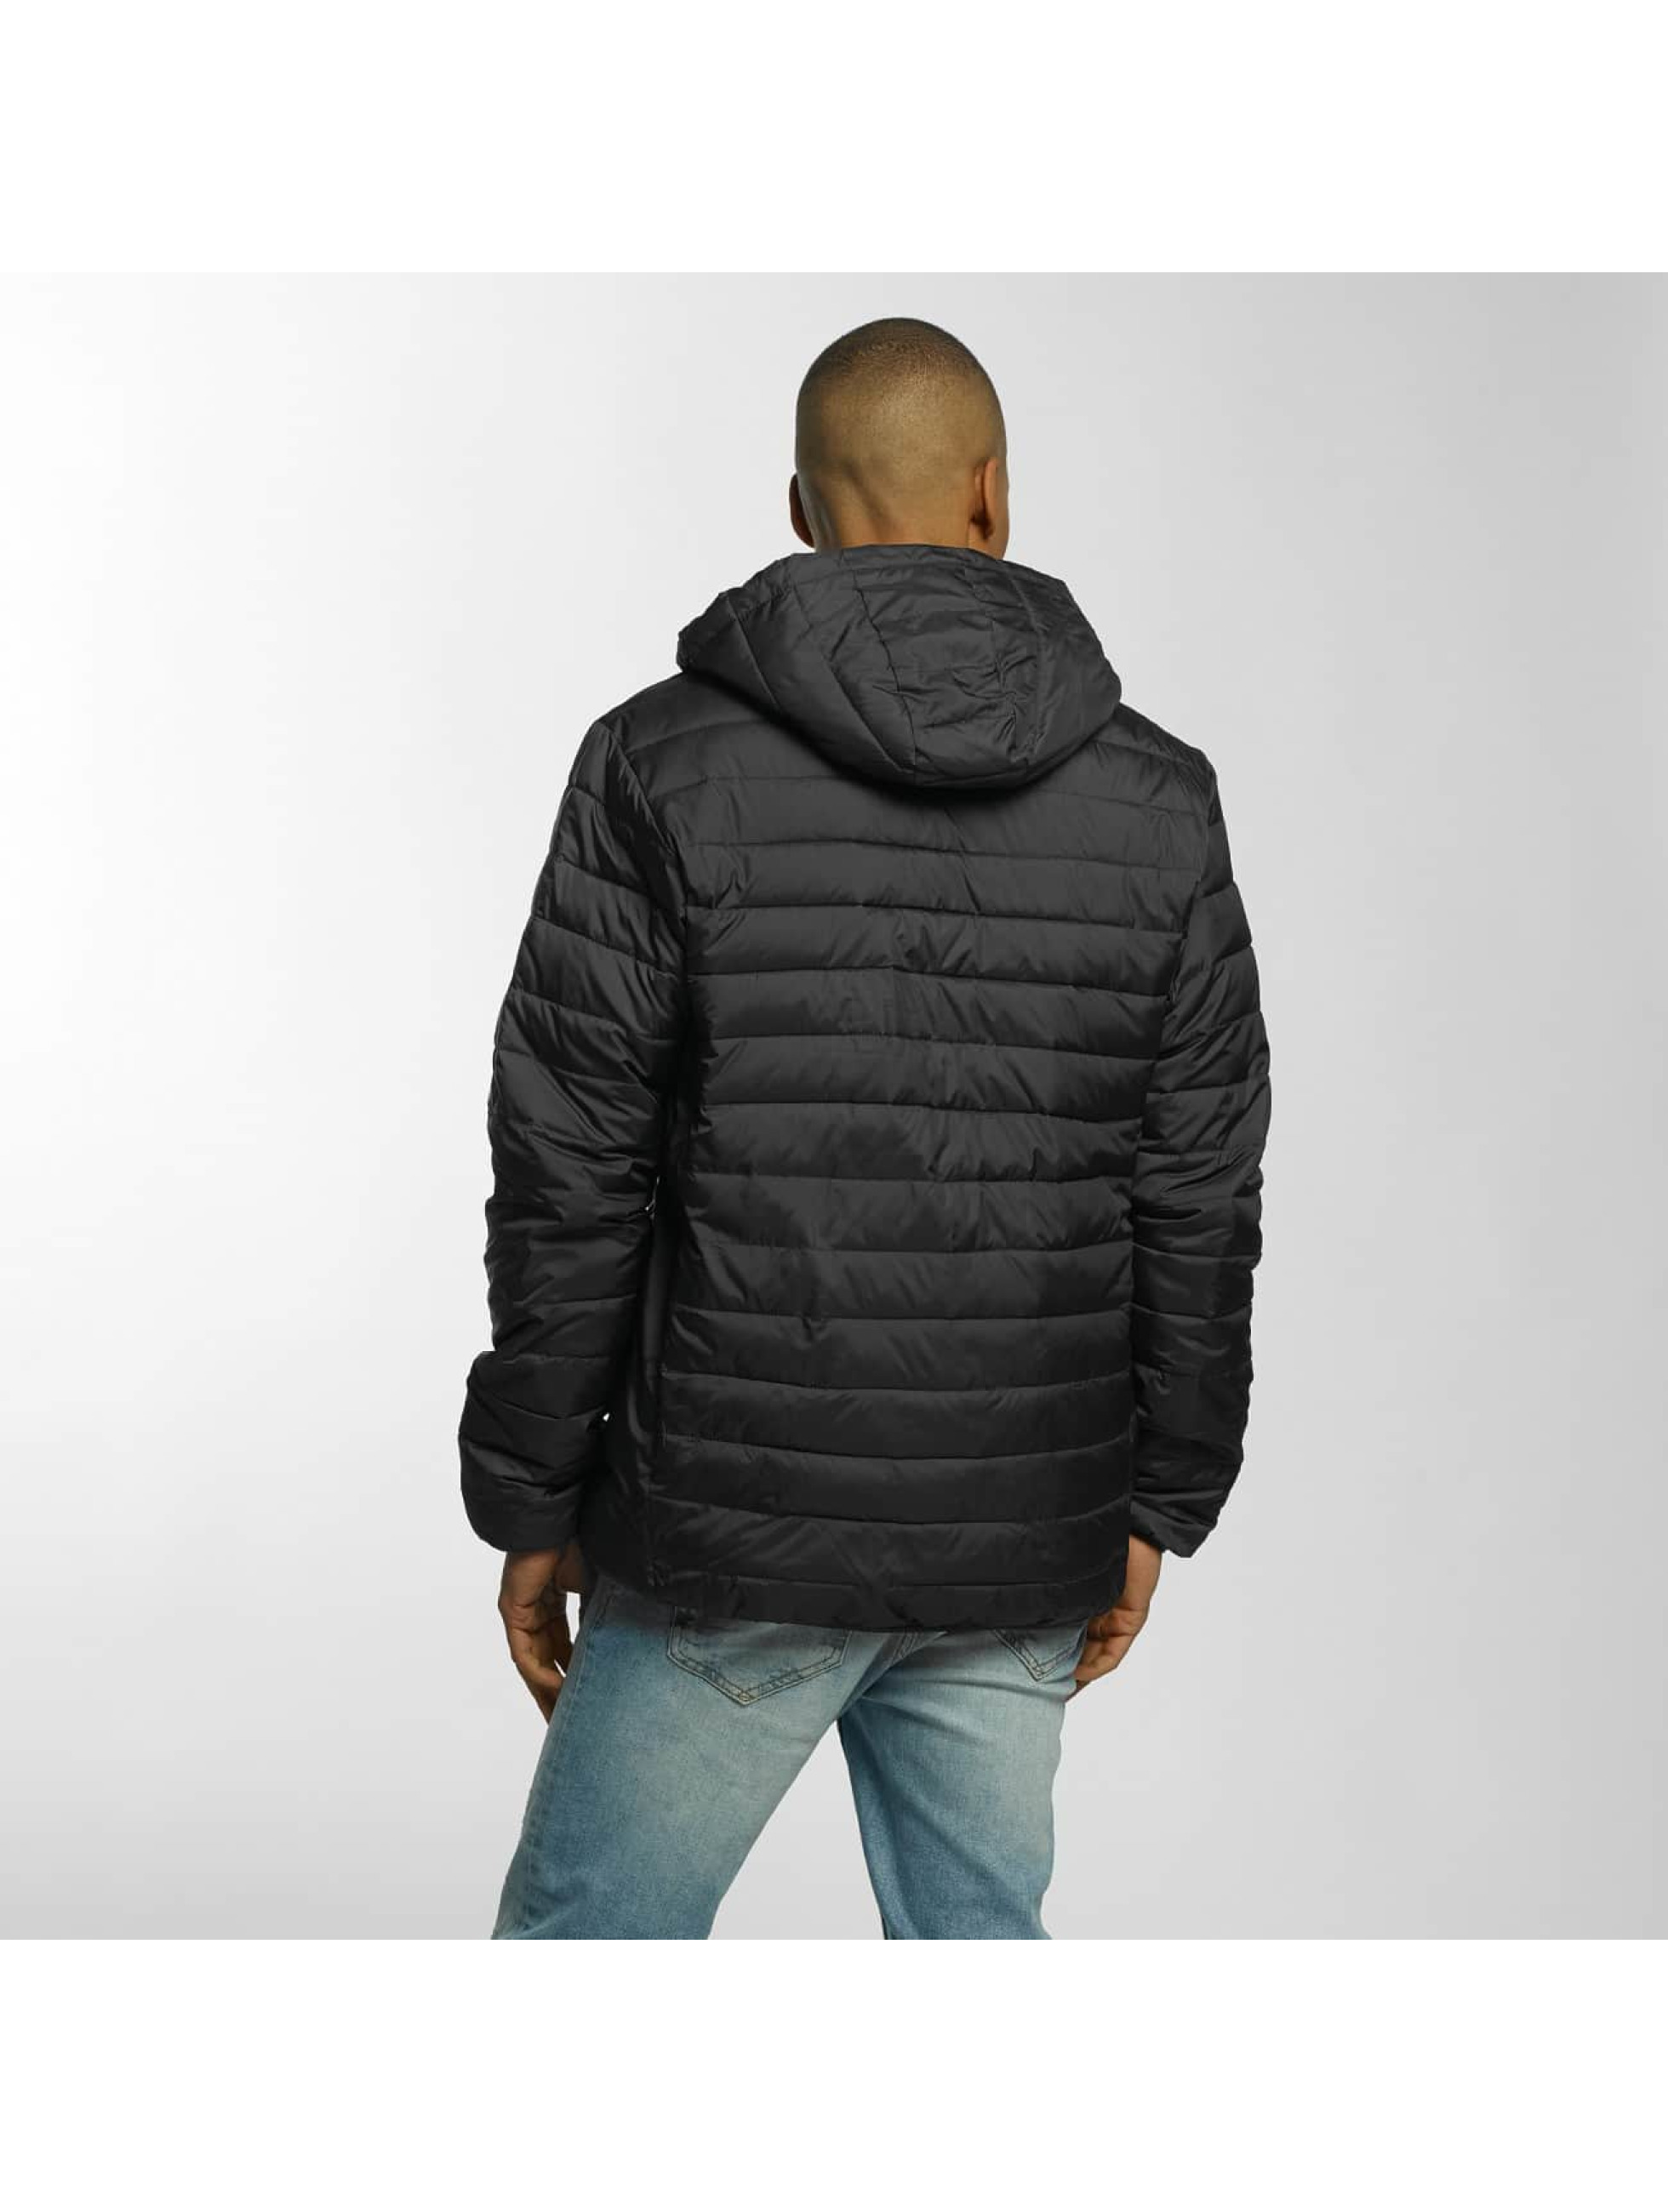 Quiksilver Winterjacke Everyday Scaly schwarz